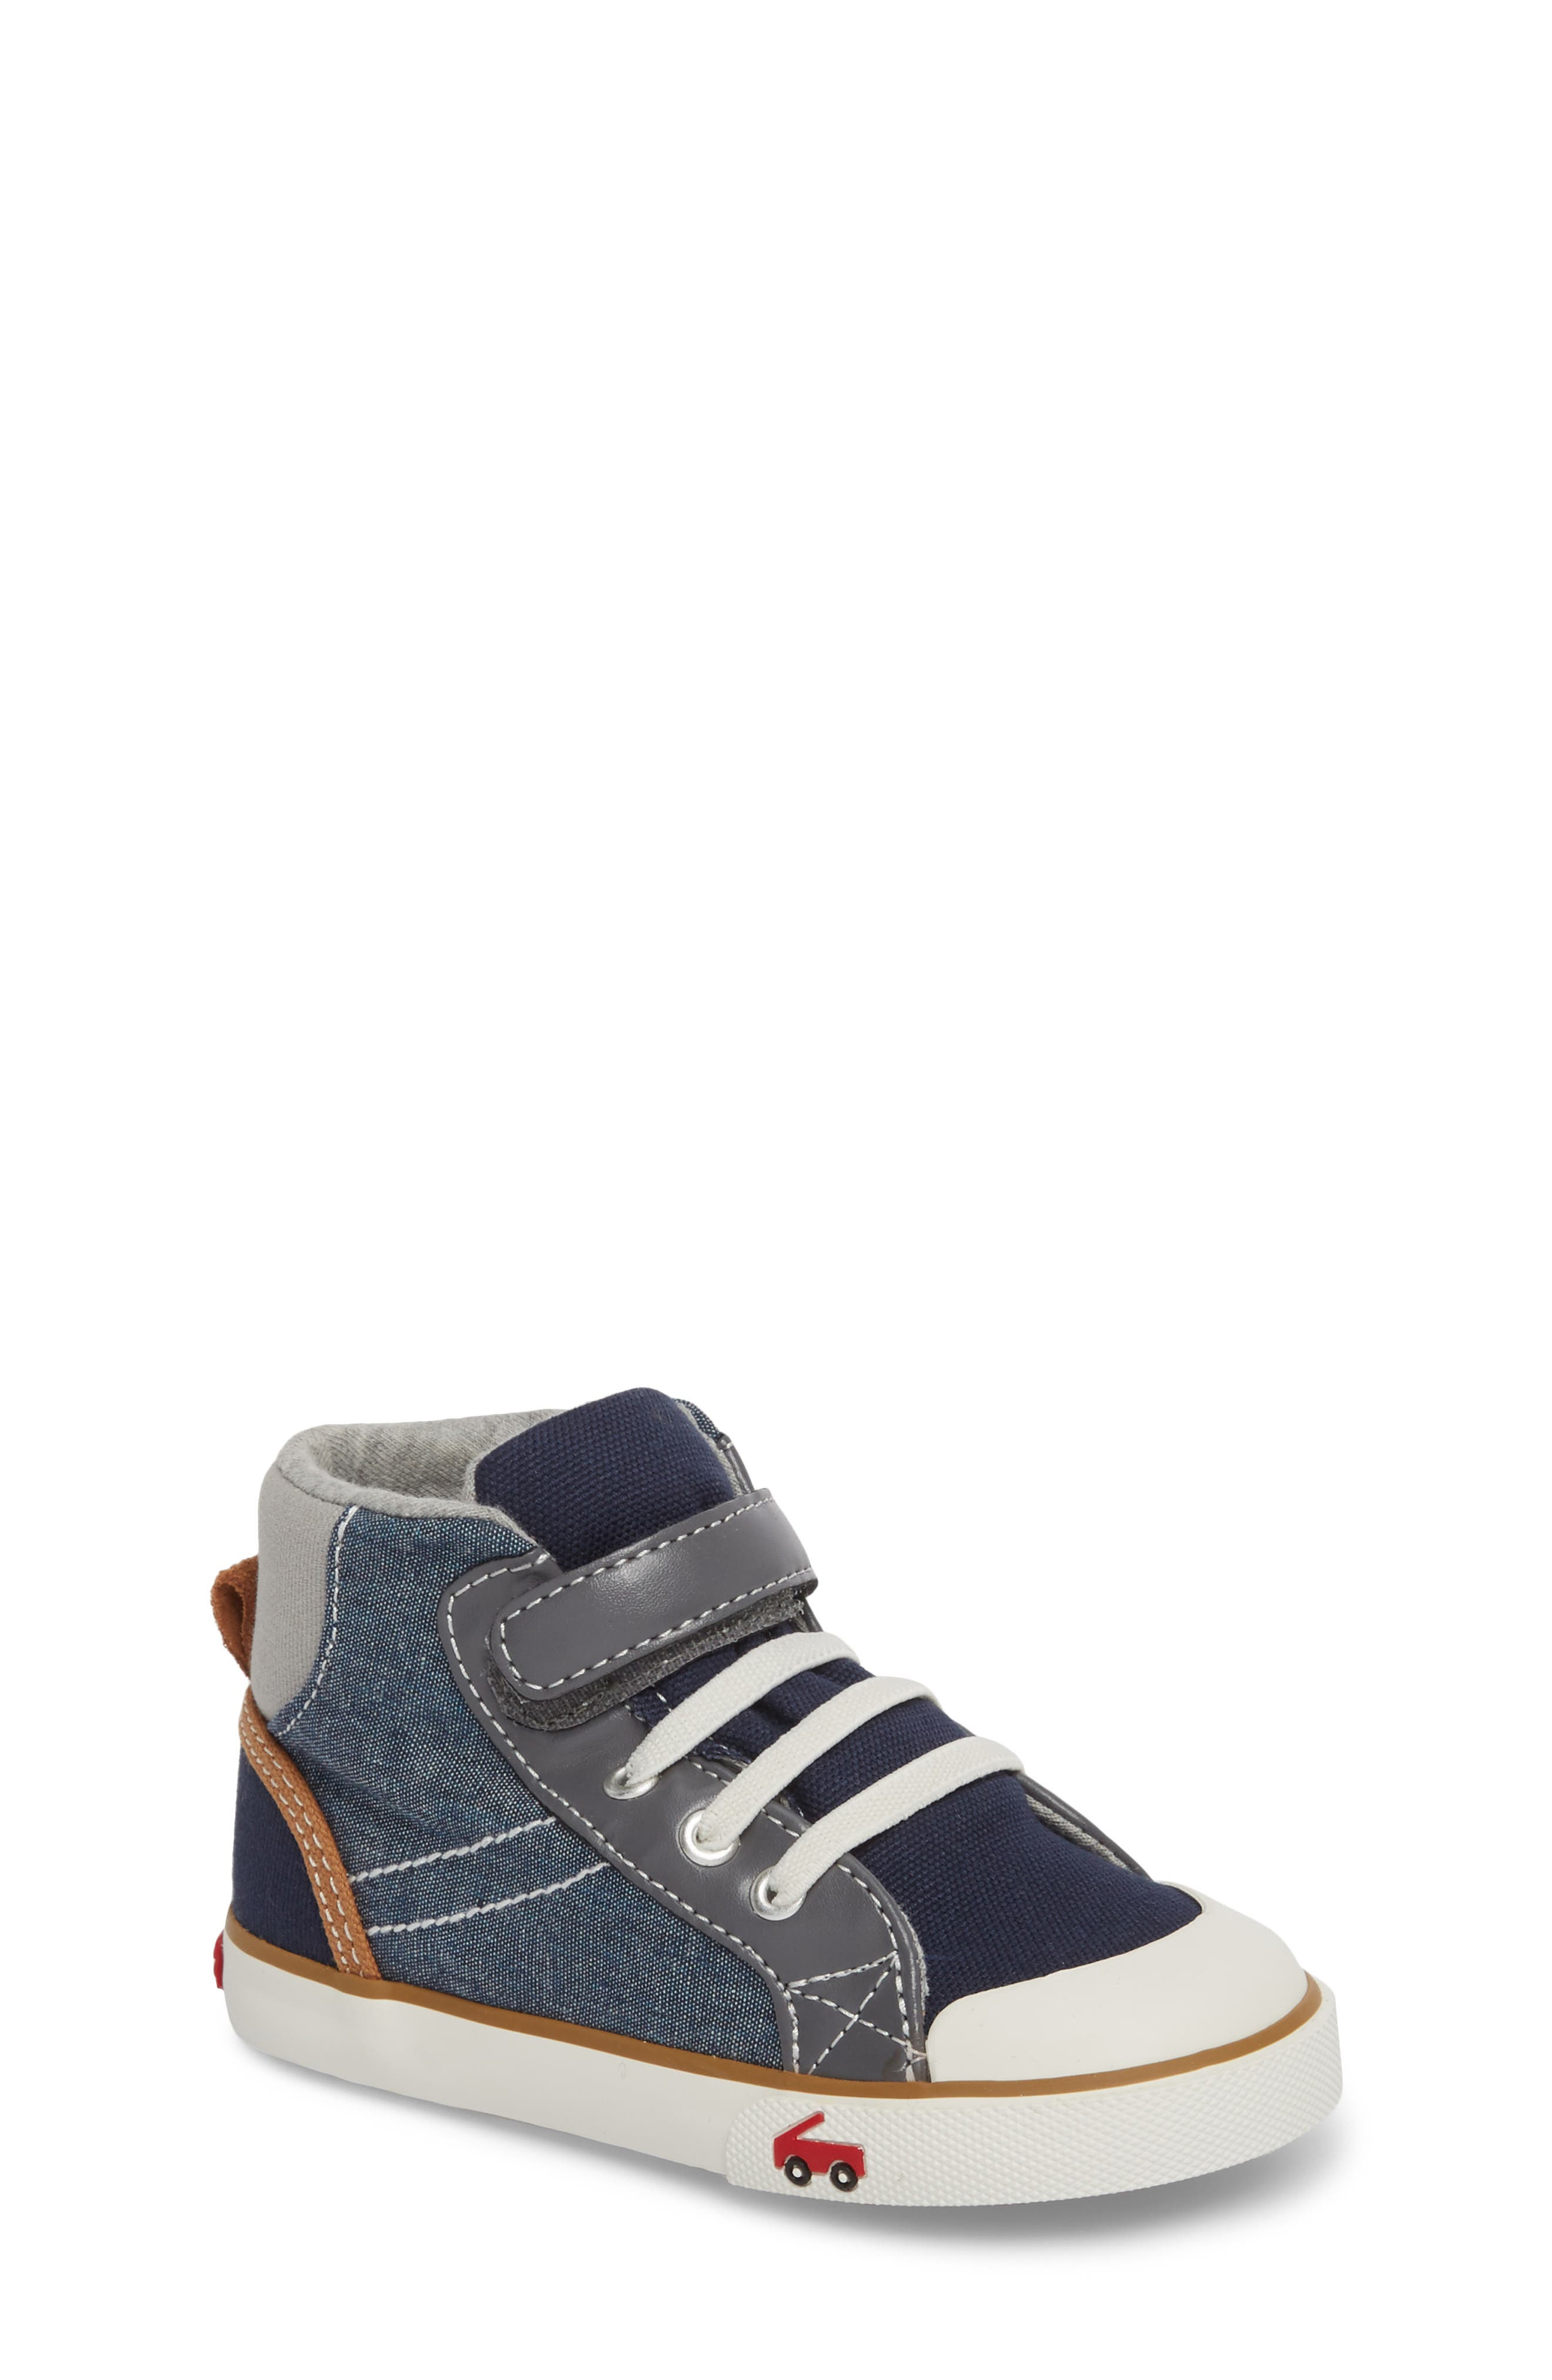 Dane Sneaker,                         Main,                         color, CHAMBRAY MULTI